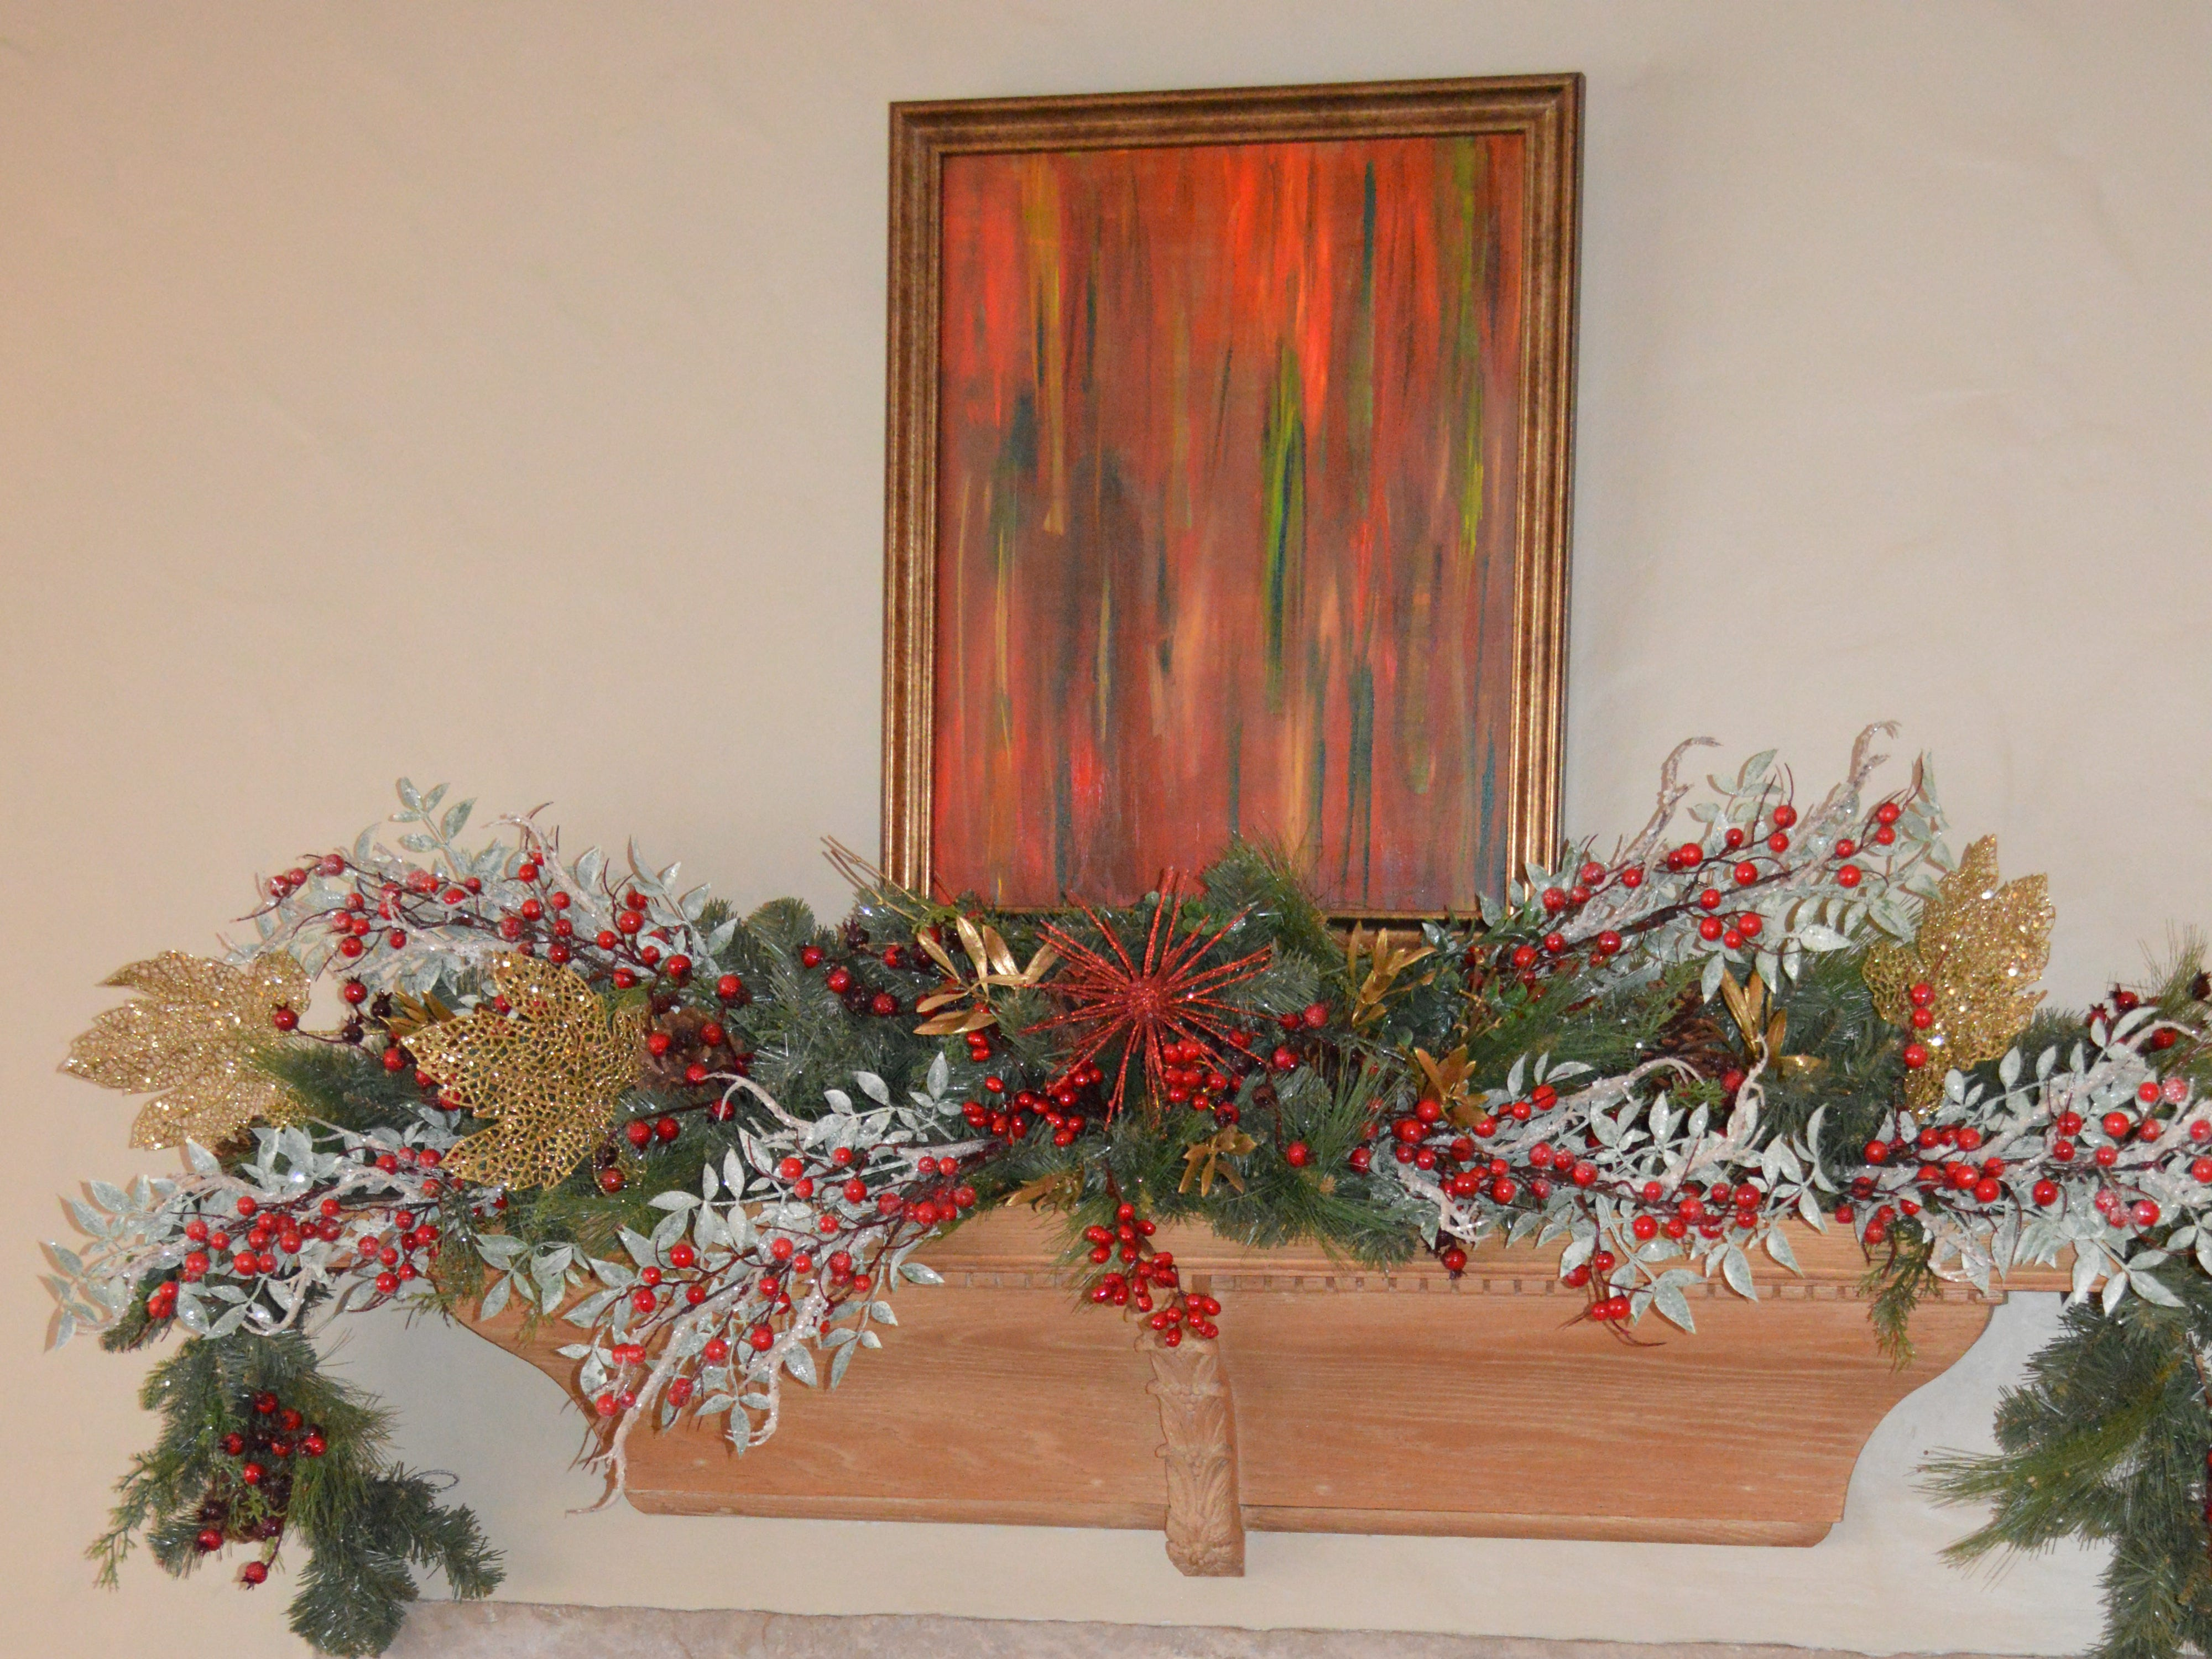 Kathy Oelstrom's mom painted the picture above the fireplace.